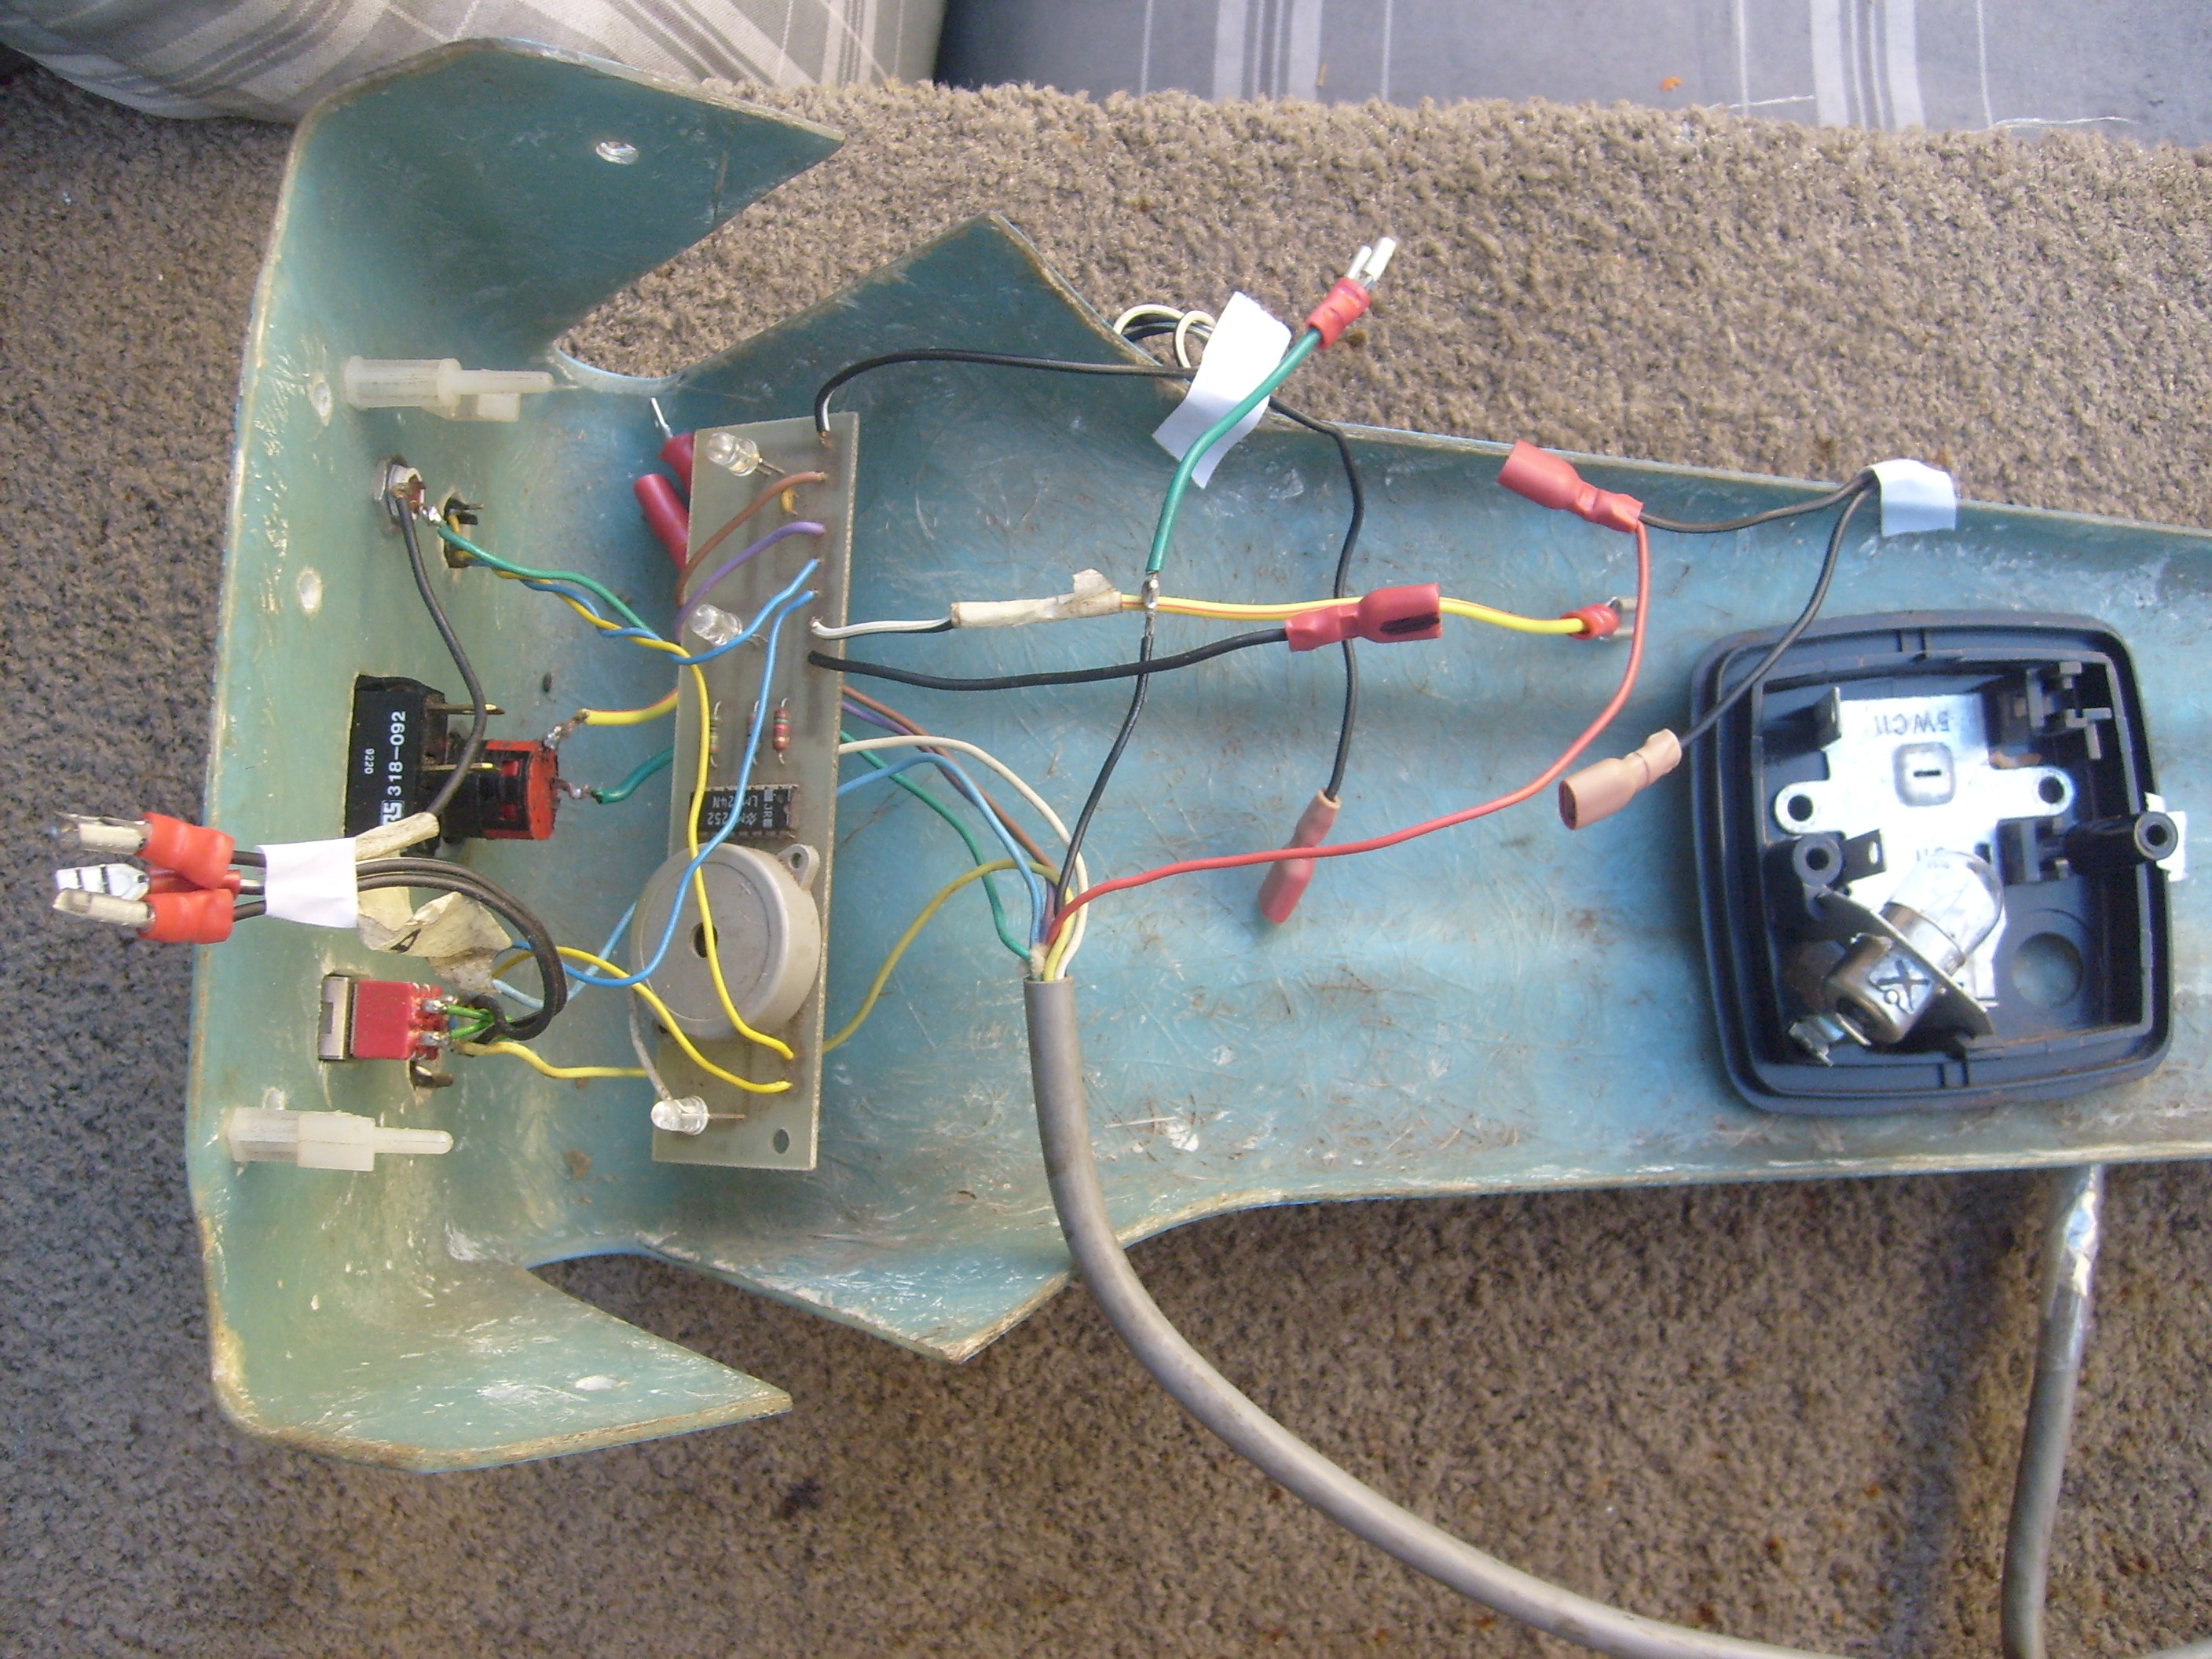 Picture of where can i get a diagram to rewire a 24volt mobility scooter just to mobalise it , can i by pass the circuit board  ?